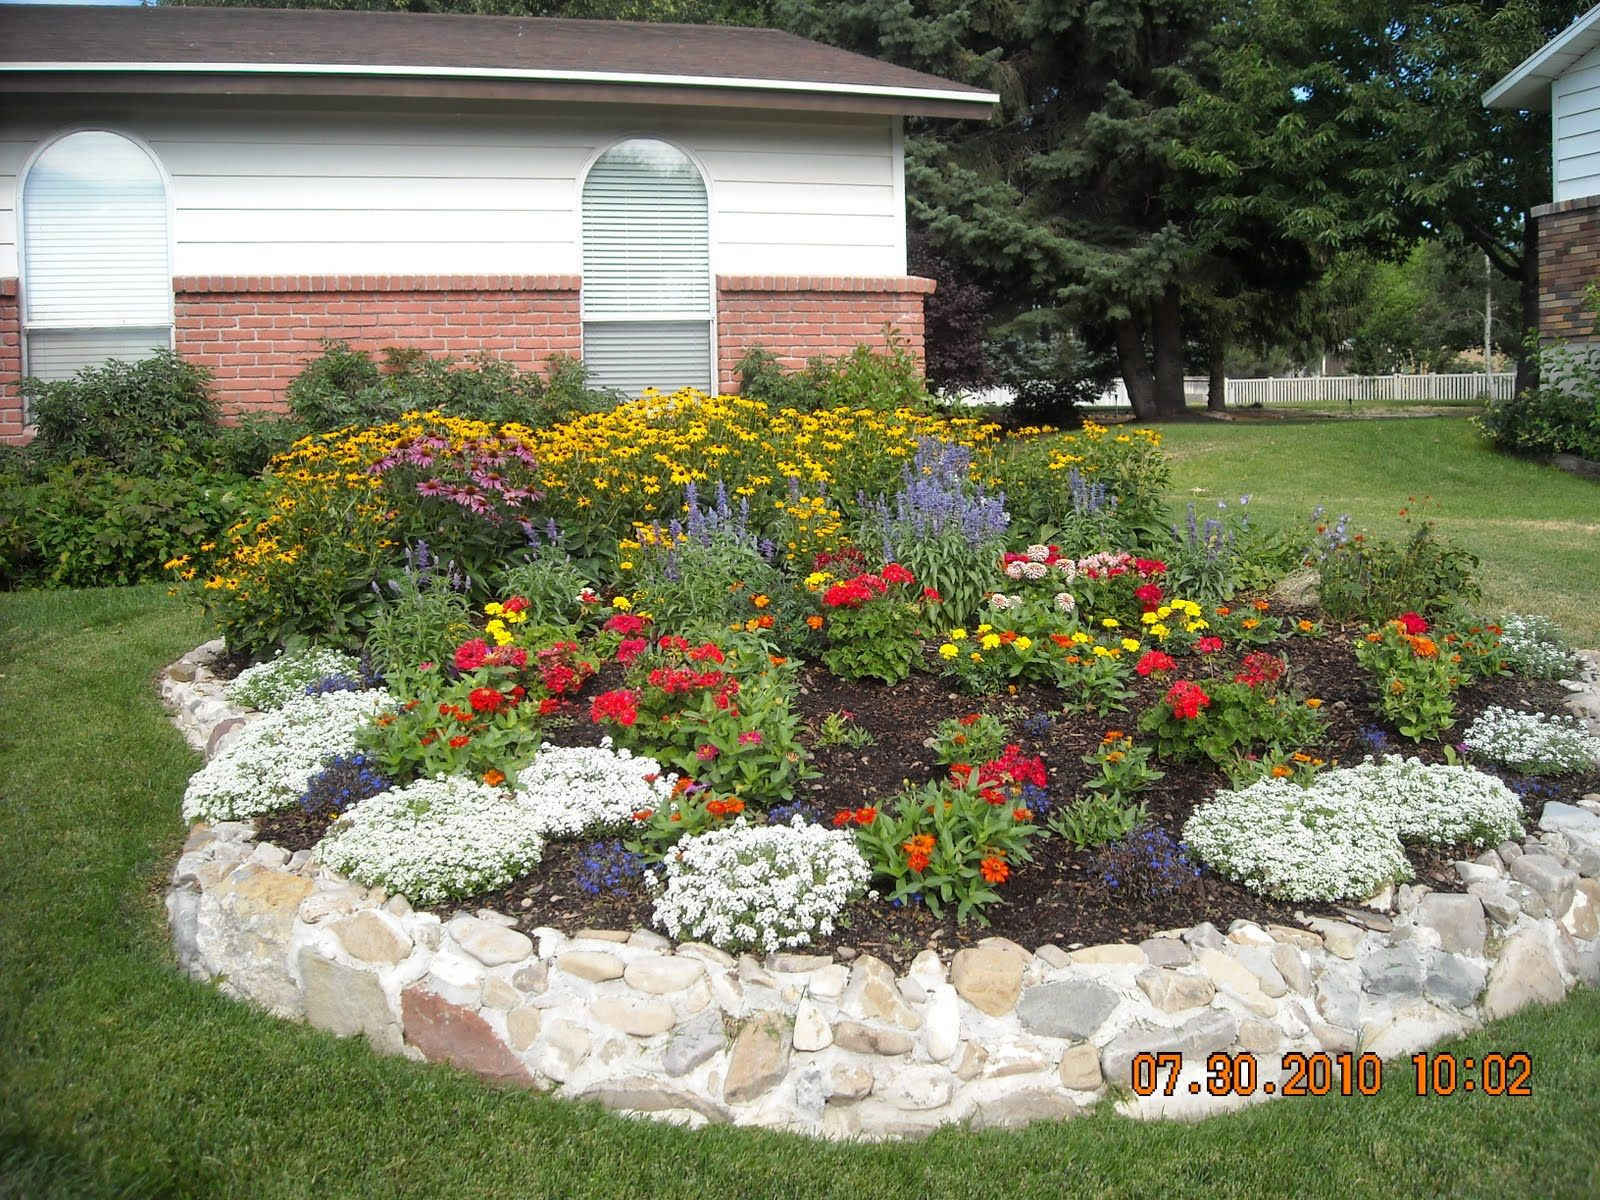 Flower Beds This Is How The Flower Bed Looks After